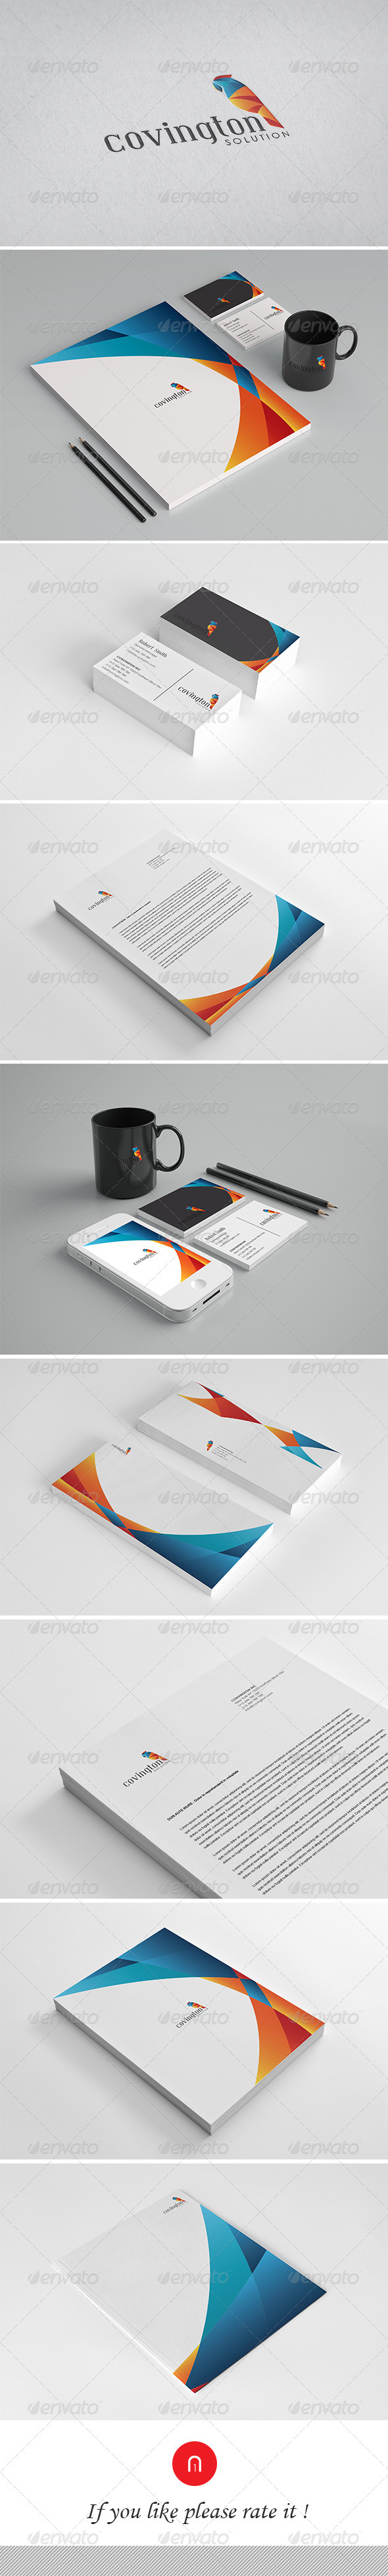 Corporate Identity - Convington Solution - Stationery Print Templates